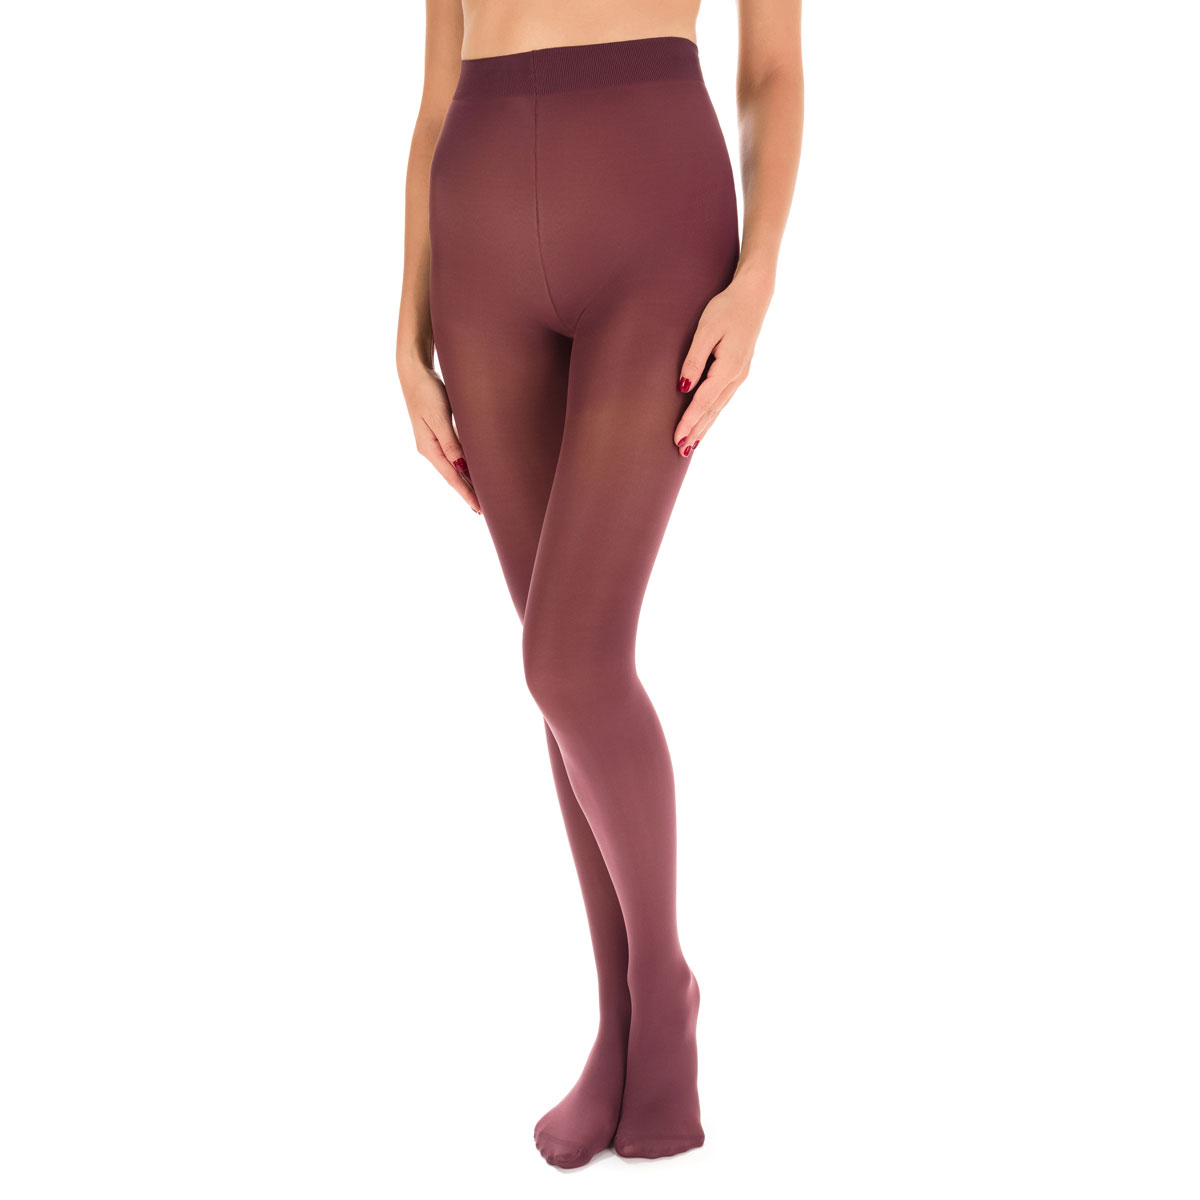 Collant marron chaud opaque velouté Style 50D